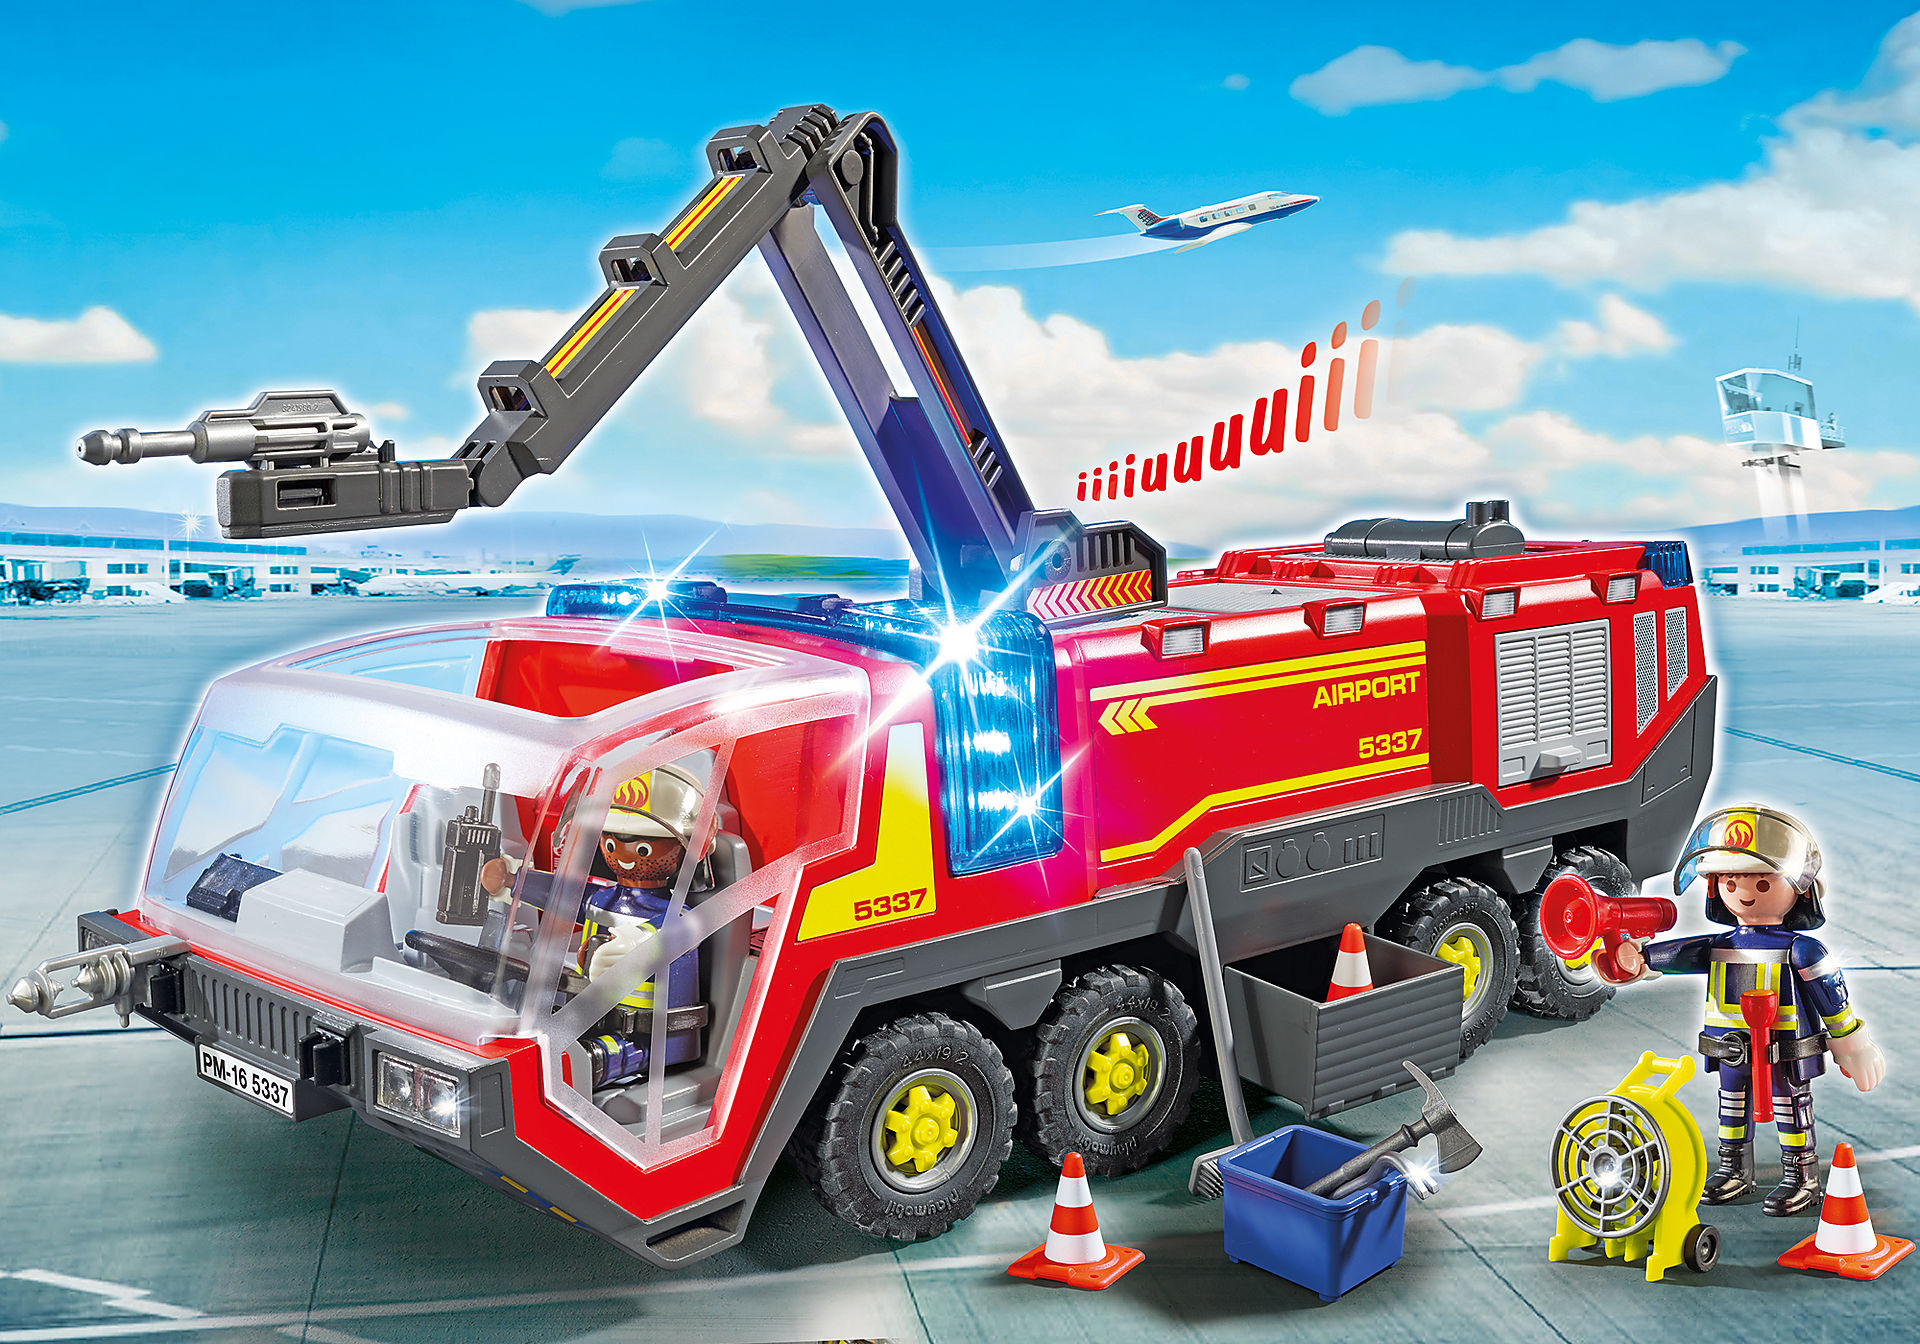 5337 Airport Fire Engine with Lights and Sound zoom image1